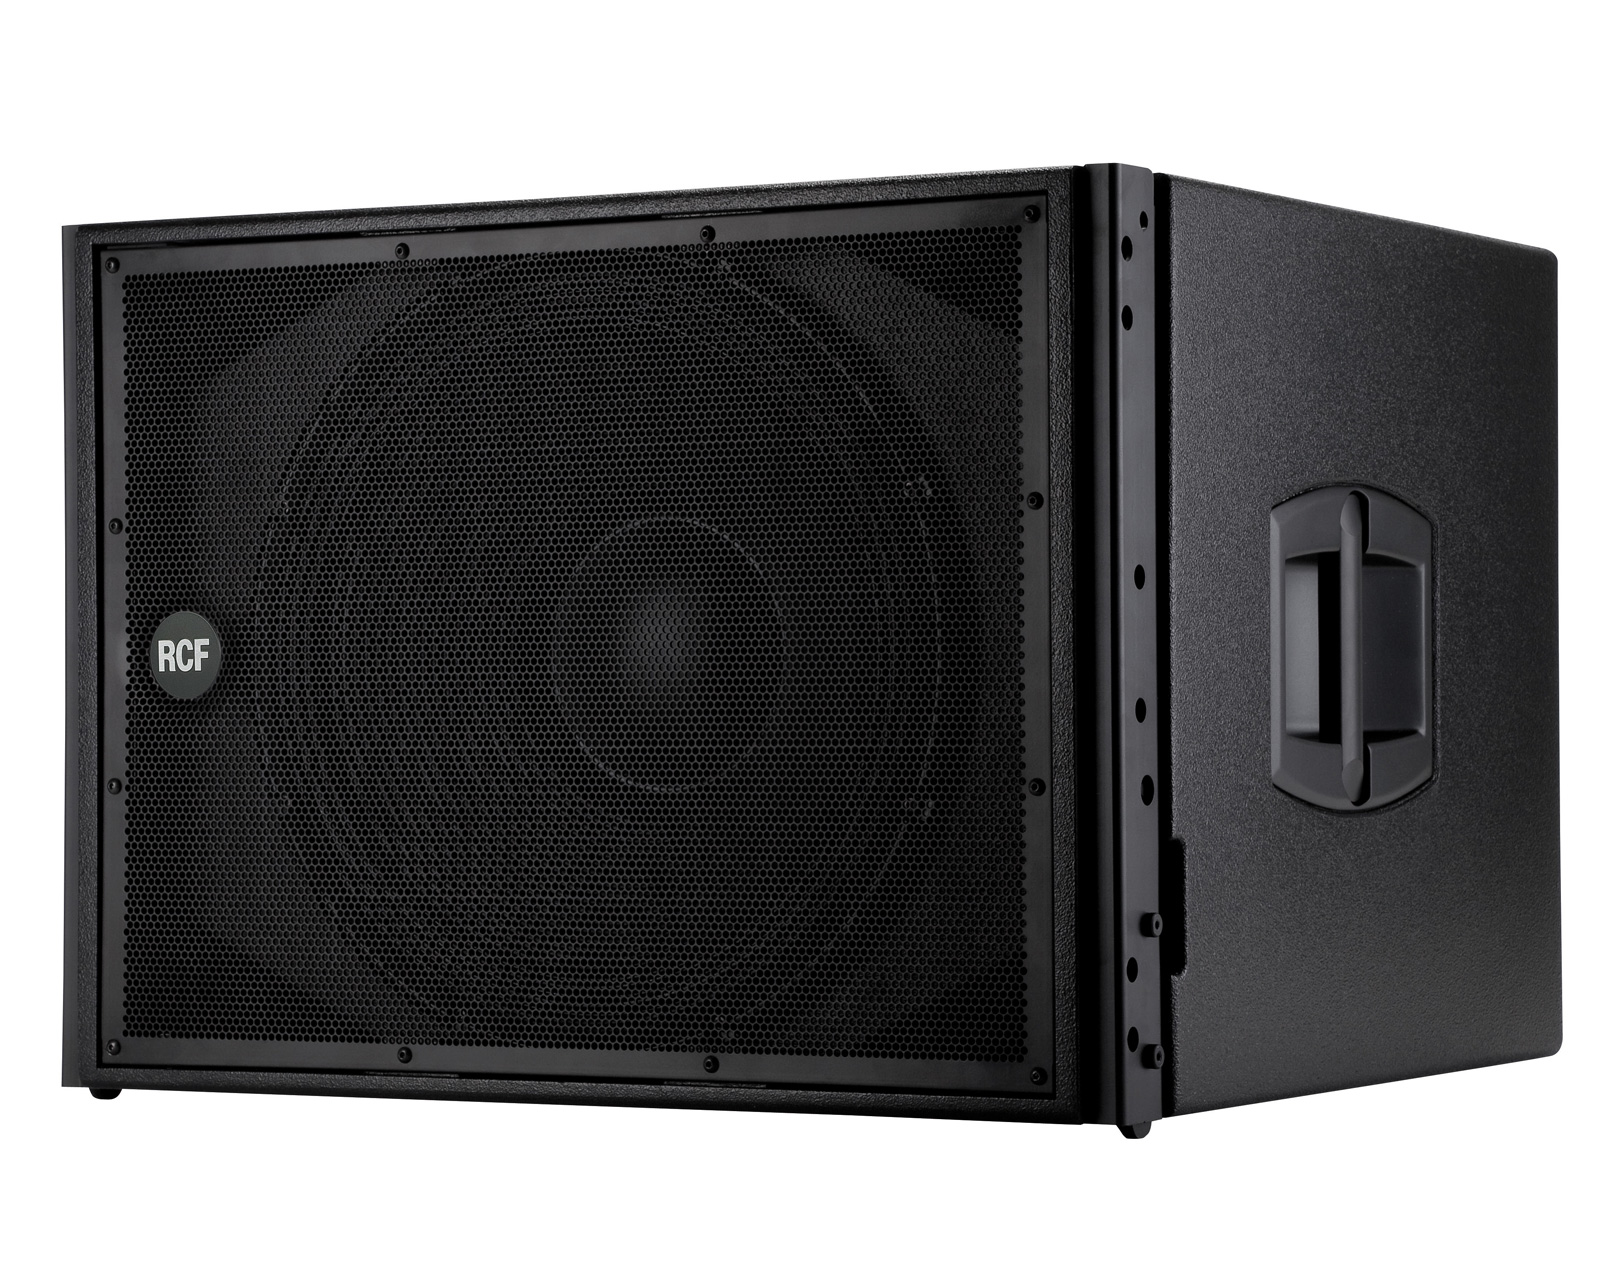 RCF HDL 18-AS Subwoofer Arrayable Line Array actif amplifié 1000W RMS 18""